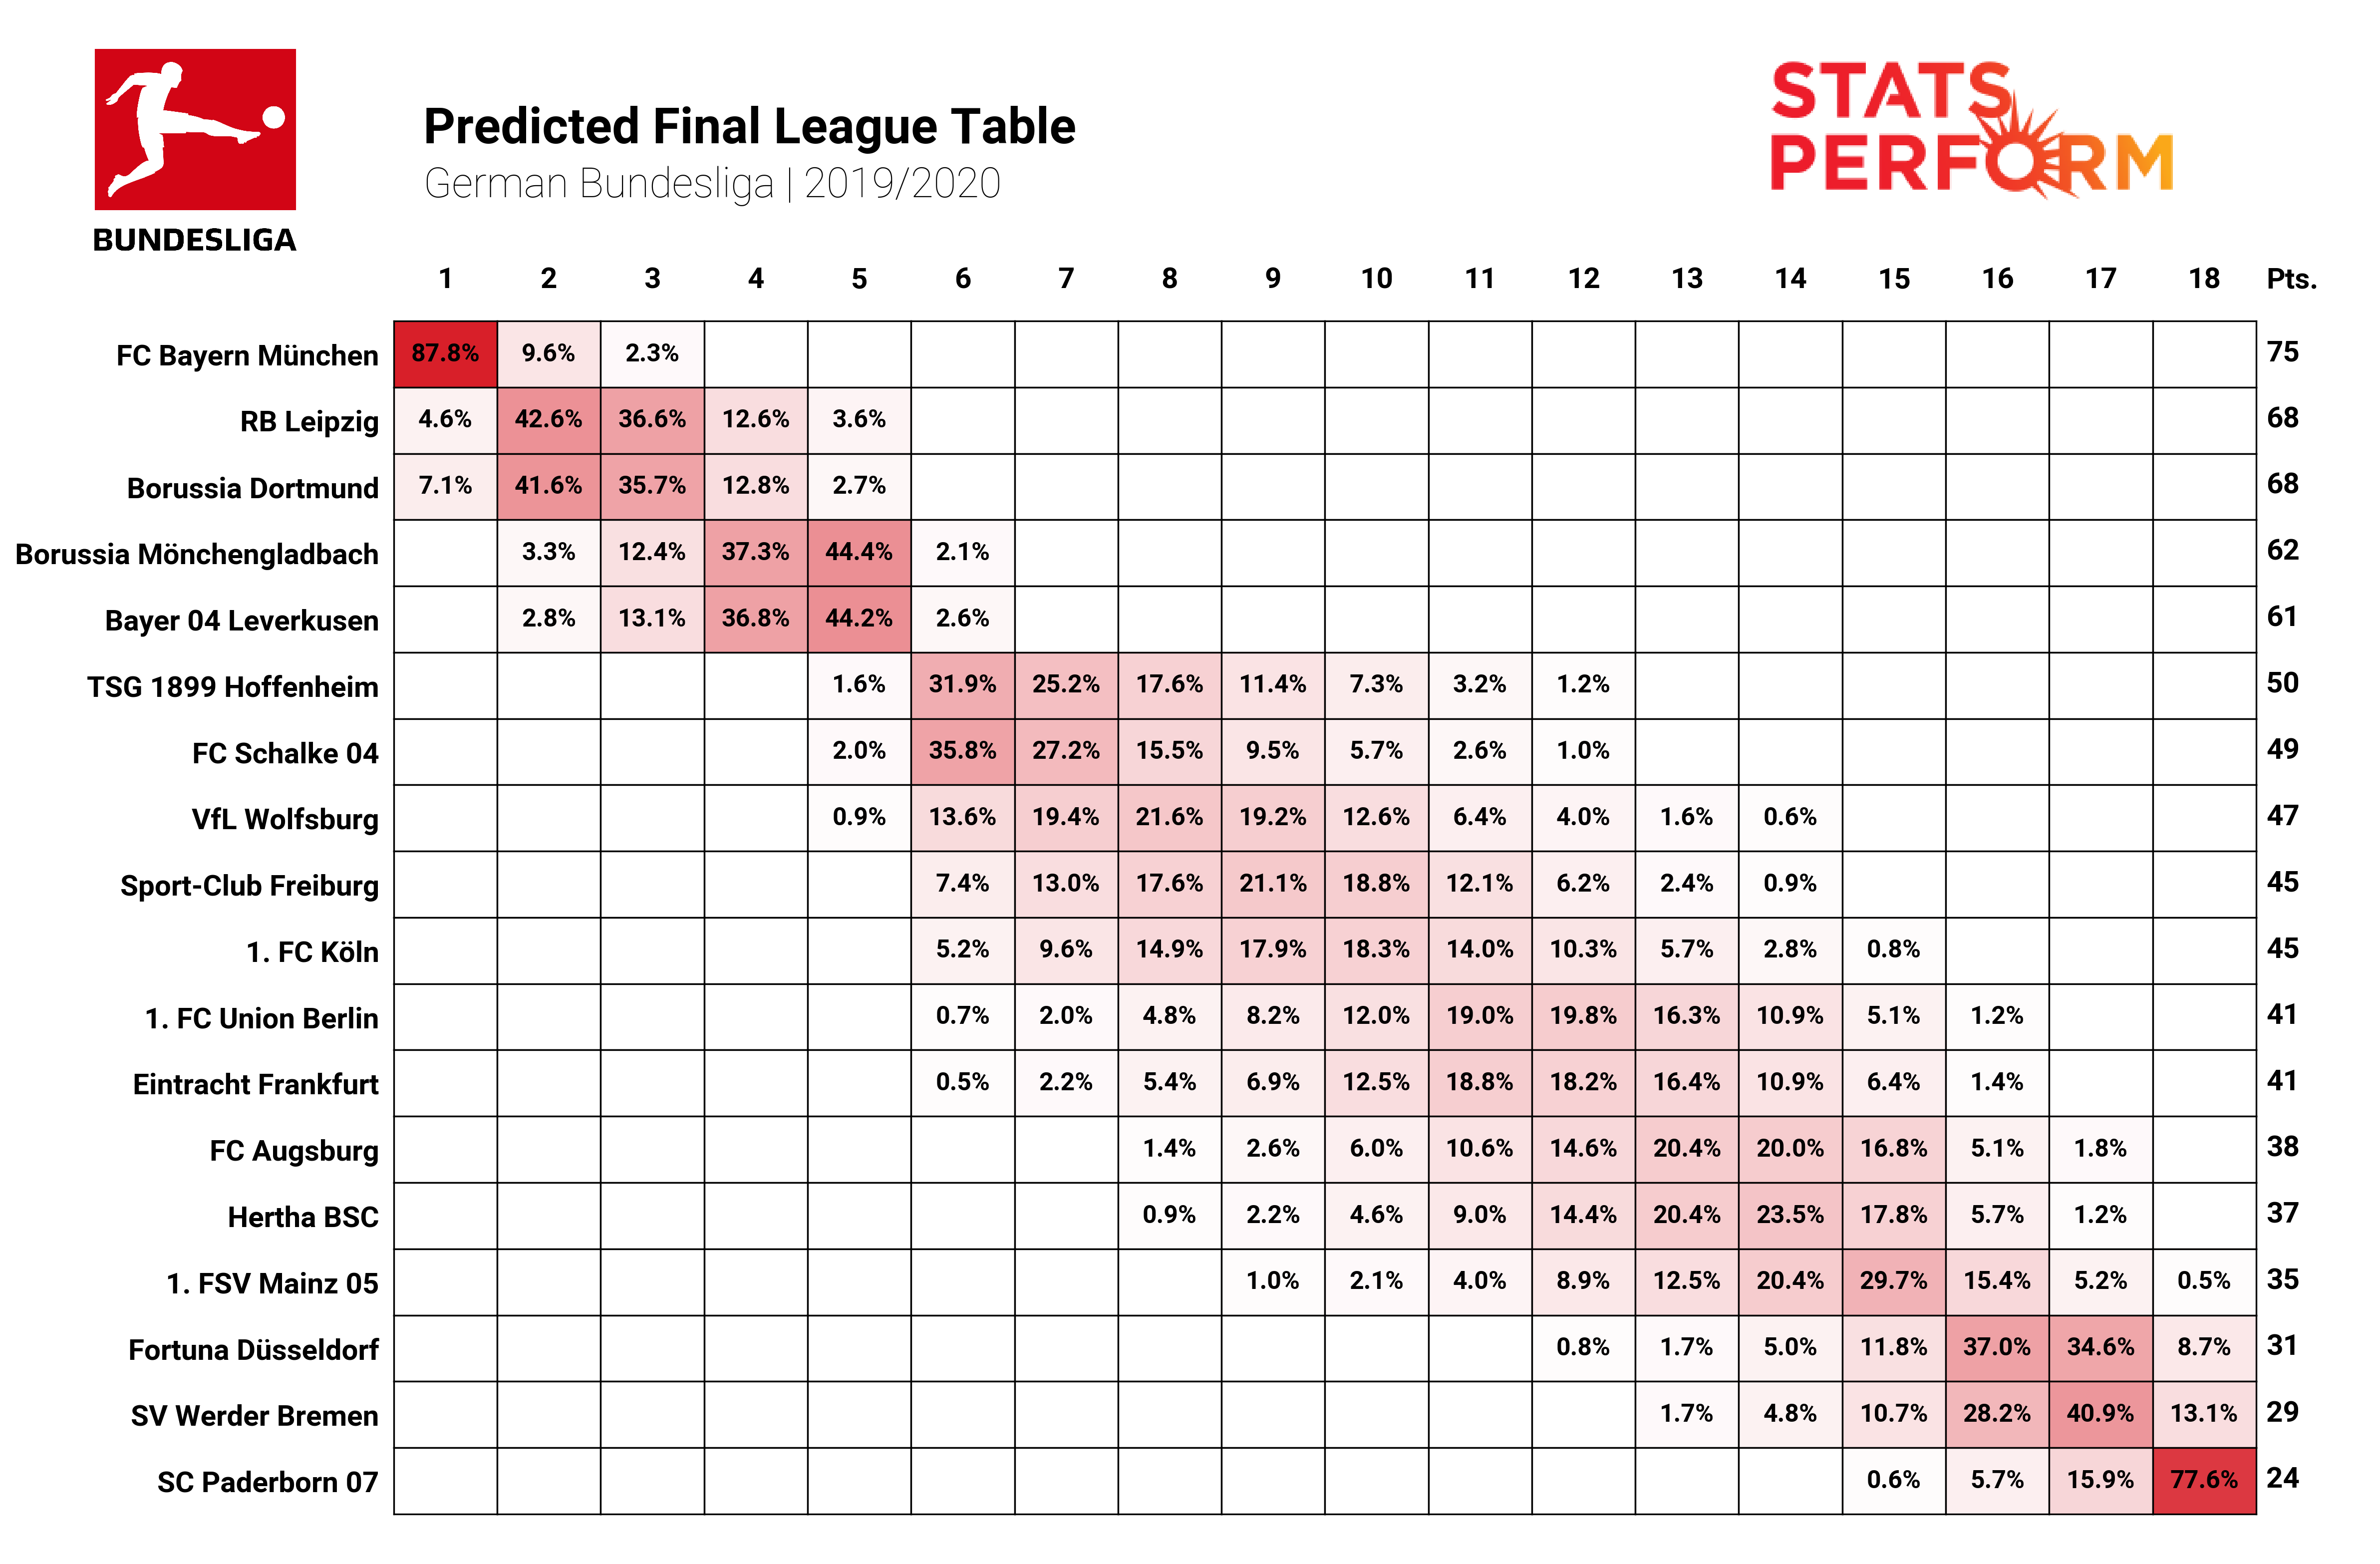 The predicted Bundesliga table based on our simulation.